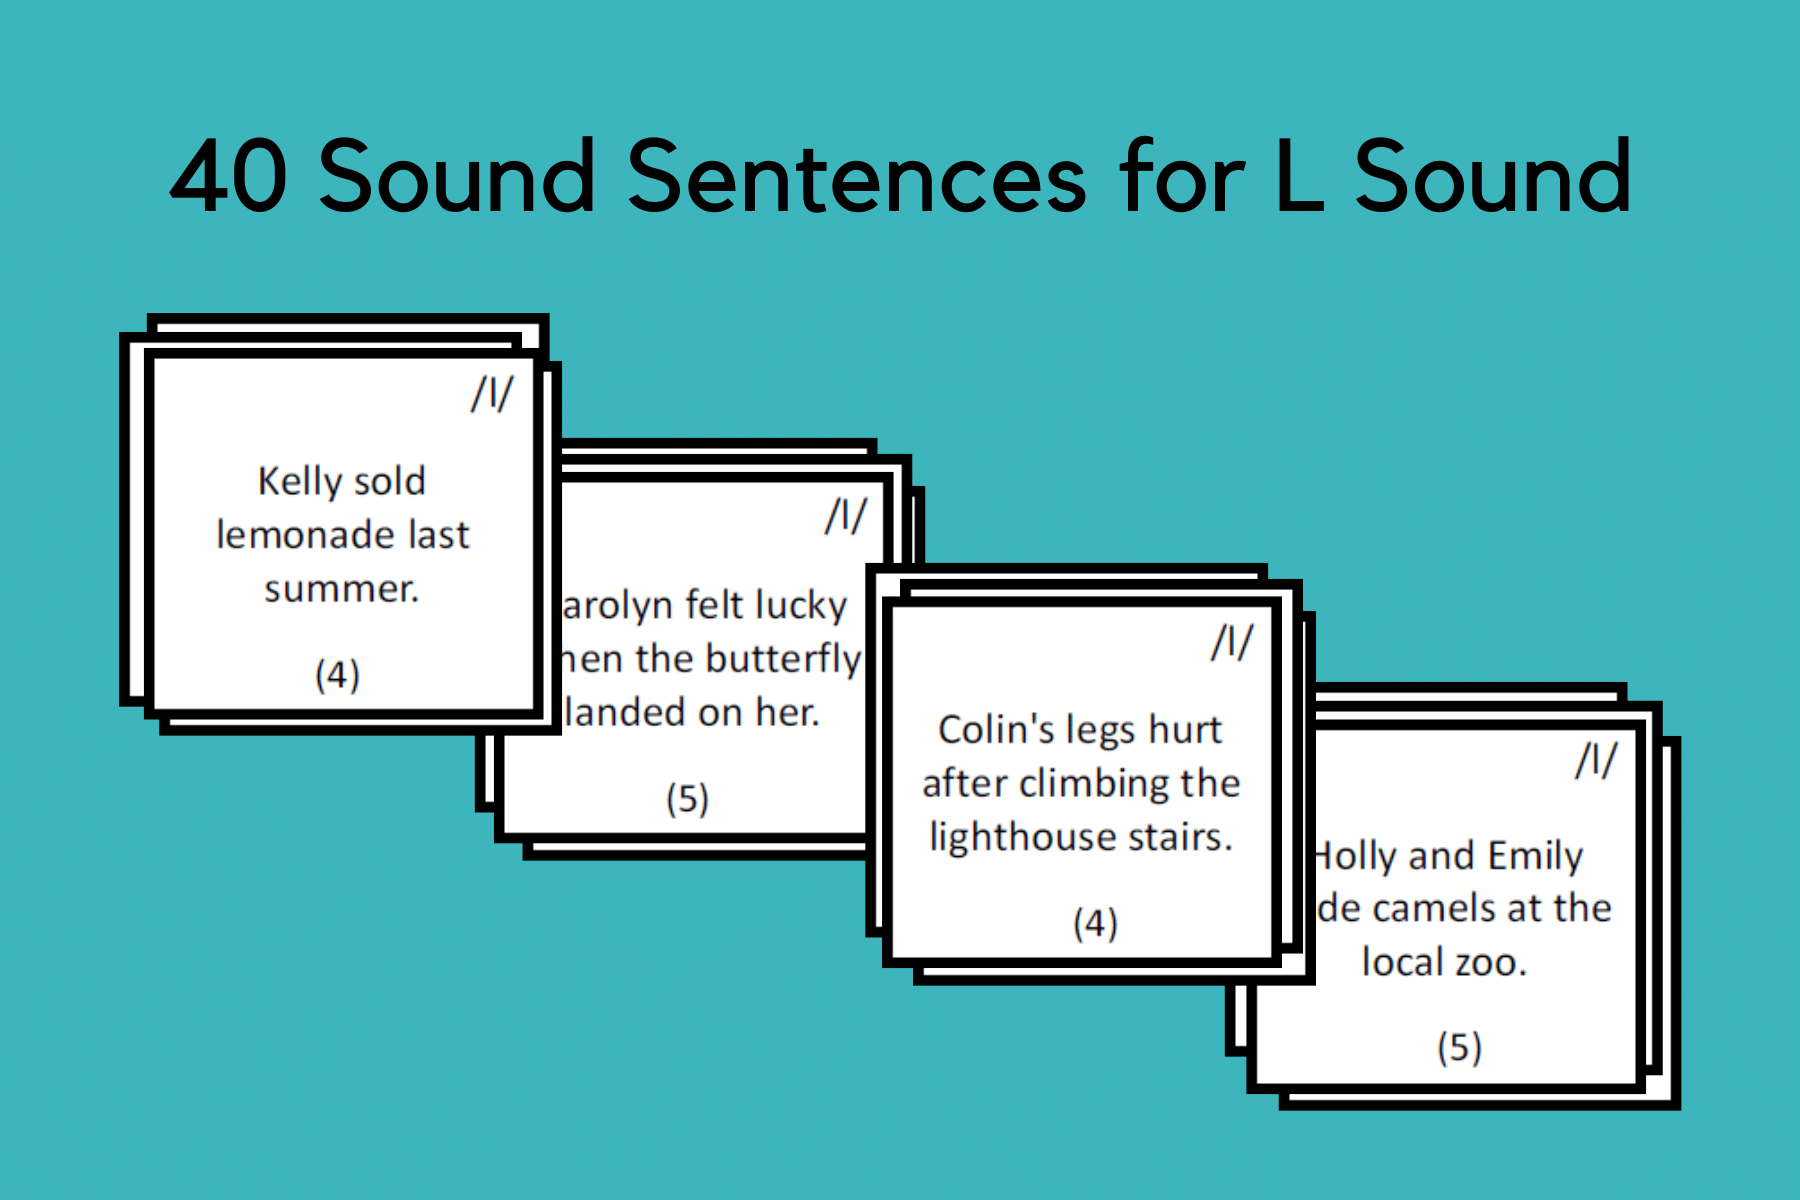 Sound Sentences For L Sound